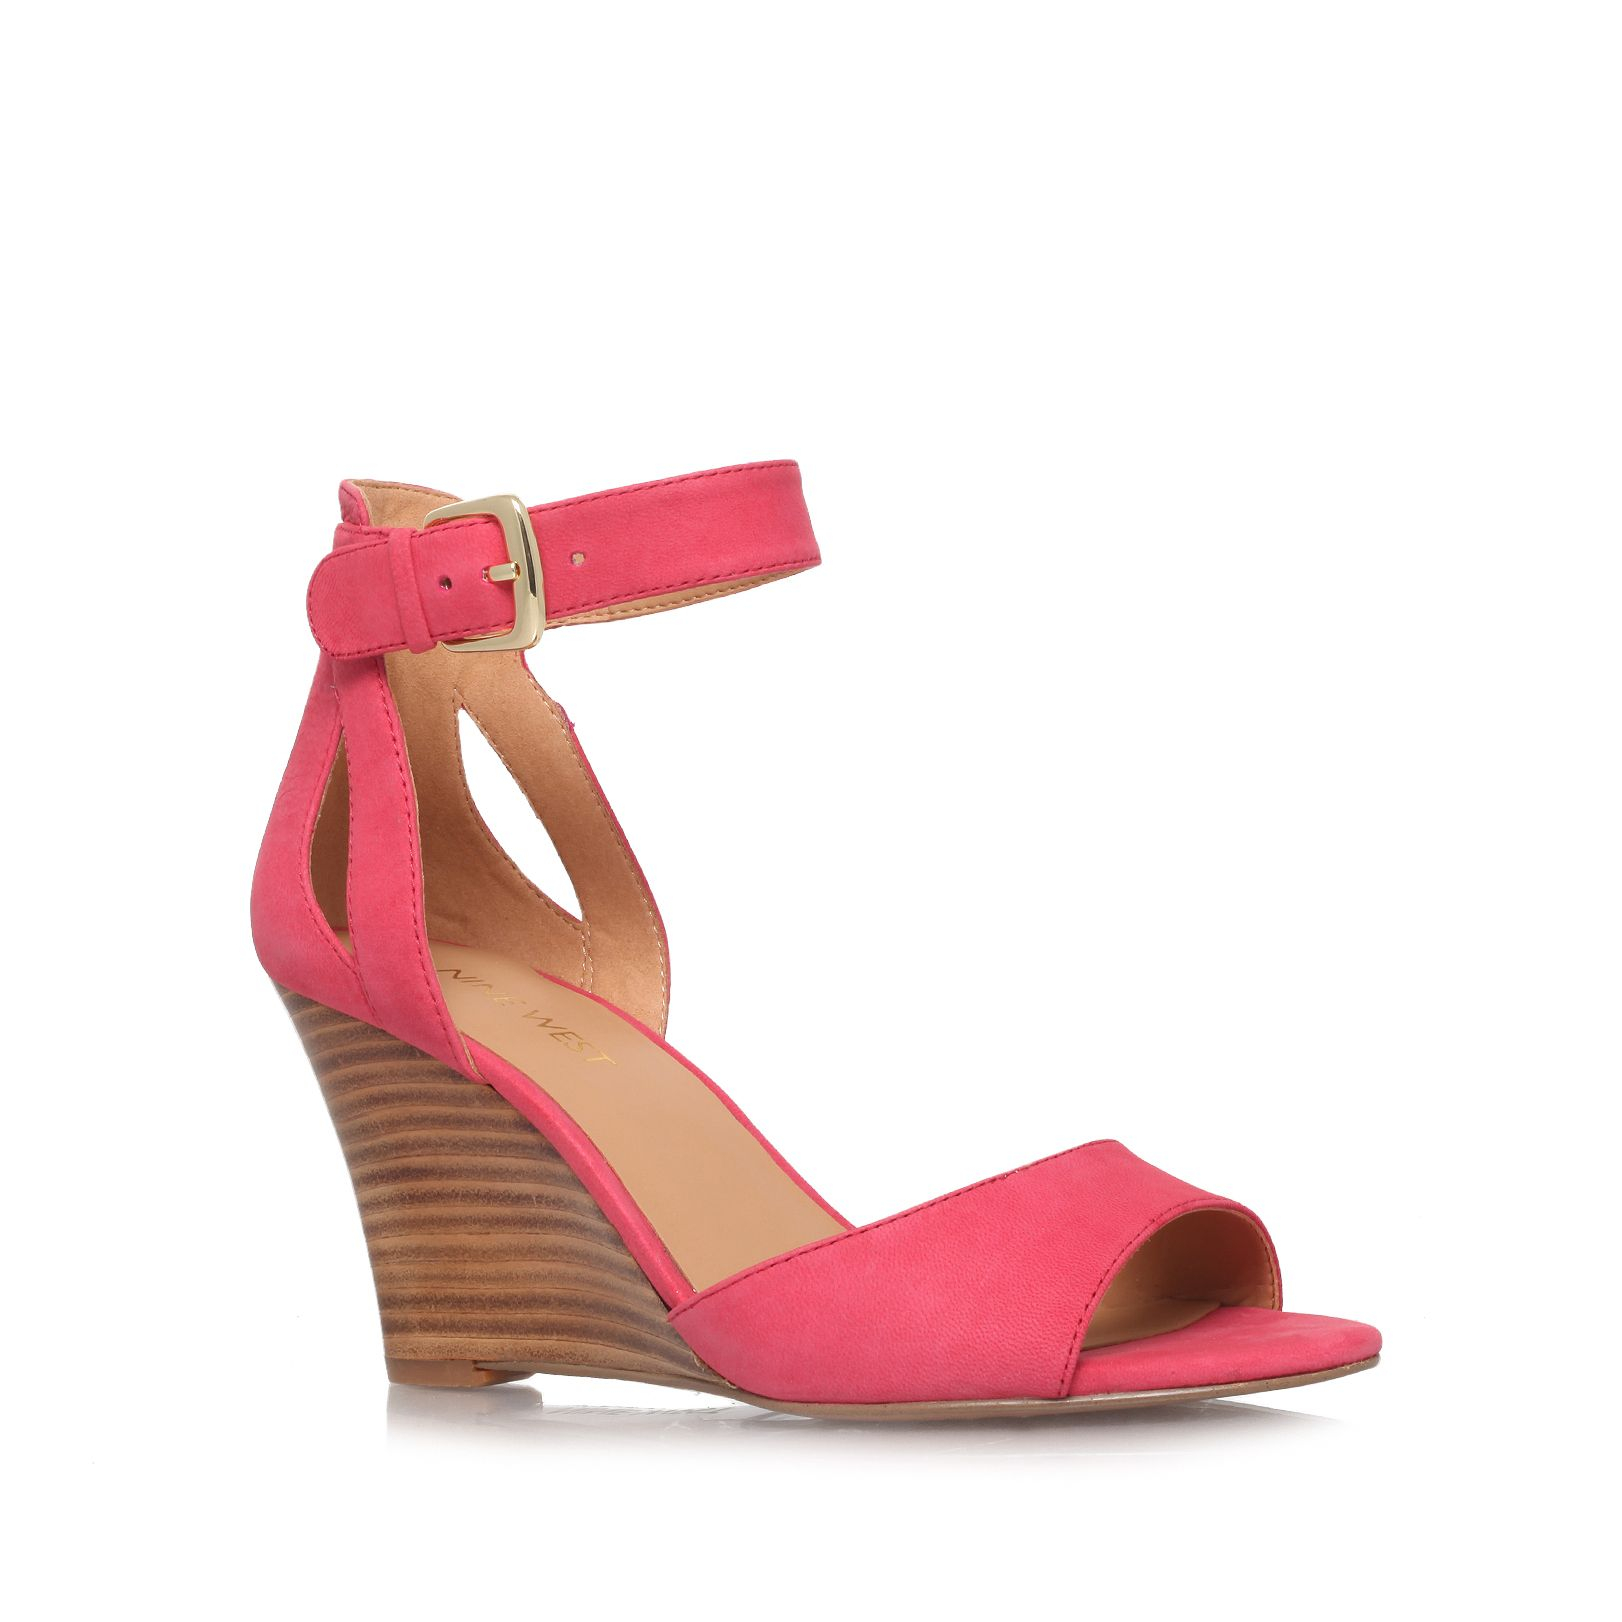 cheap big sale buy online authentic Pink 'Samia' mid heel wedge sandals tumblr cheap price buy cheap visit with mastercard cheap price UTqhQf9N1